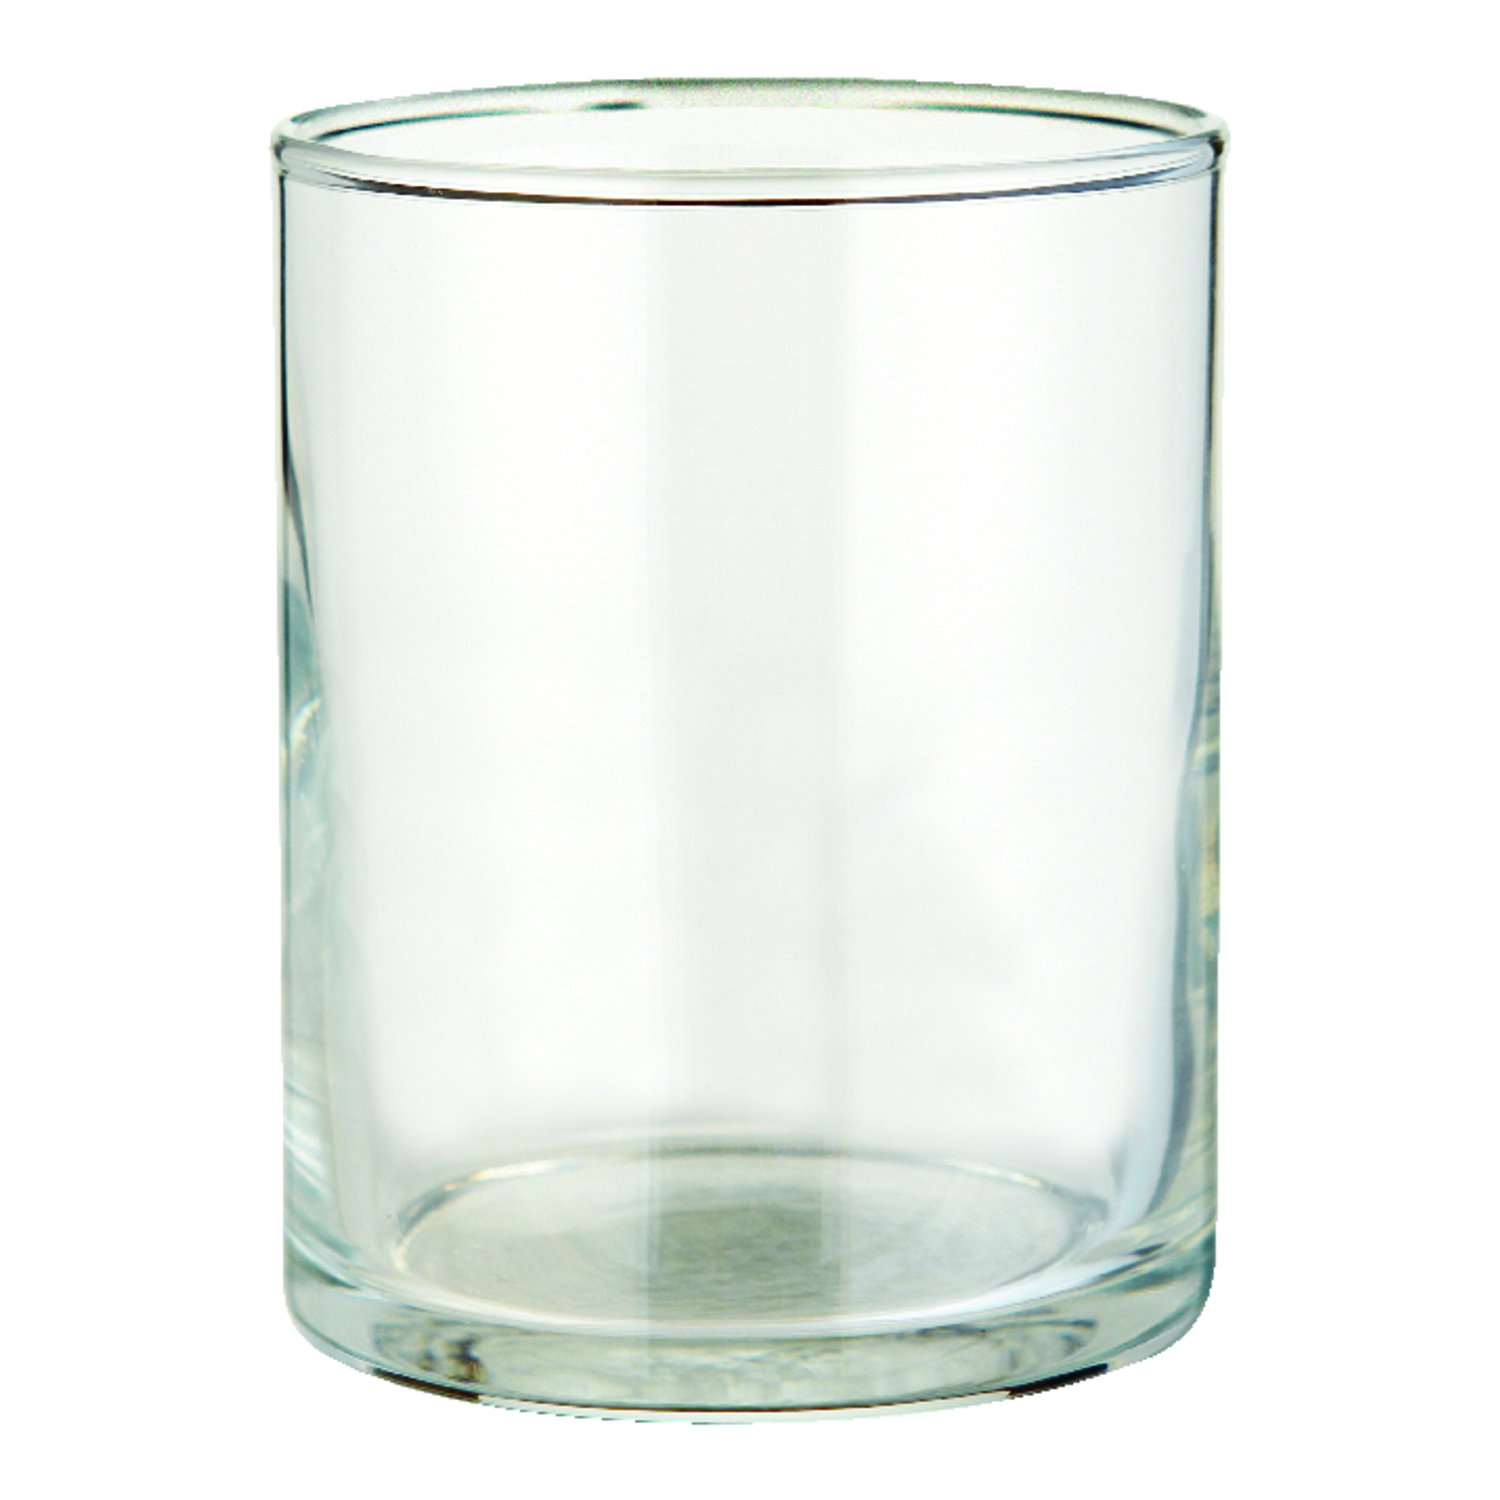 Candle-lite  2-3/4 in. H Clear  Glass  Votive Holder